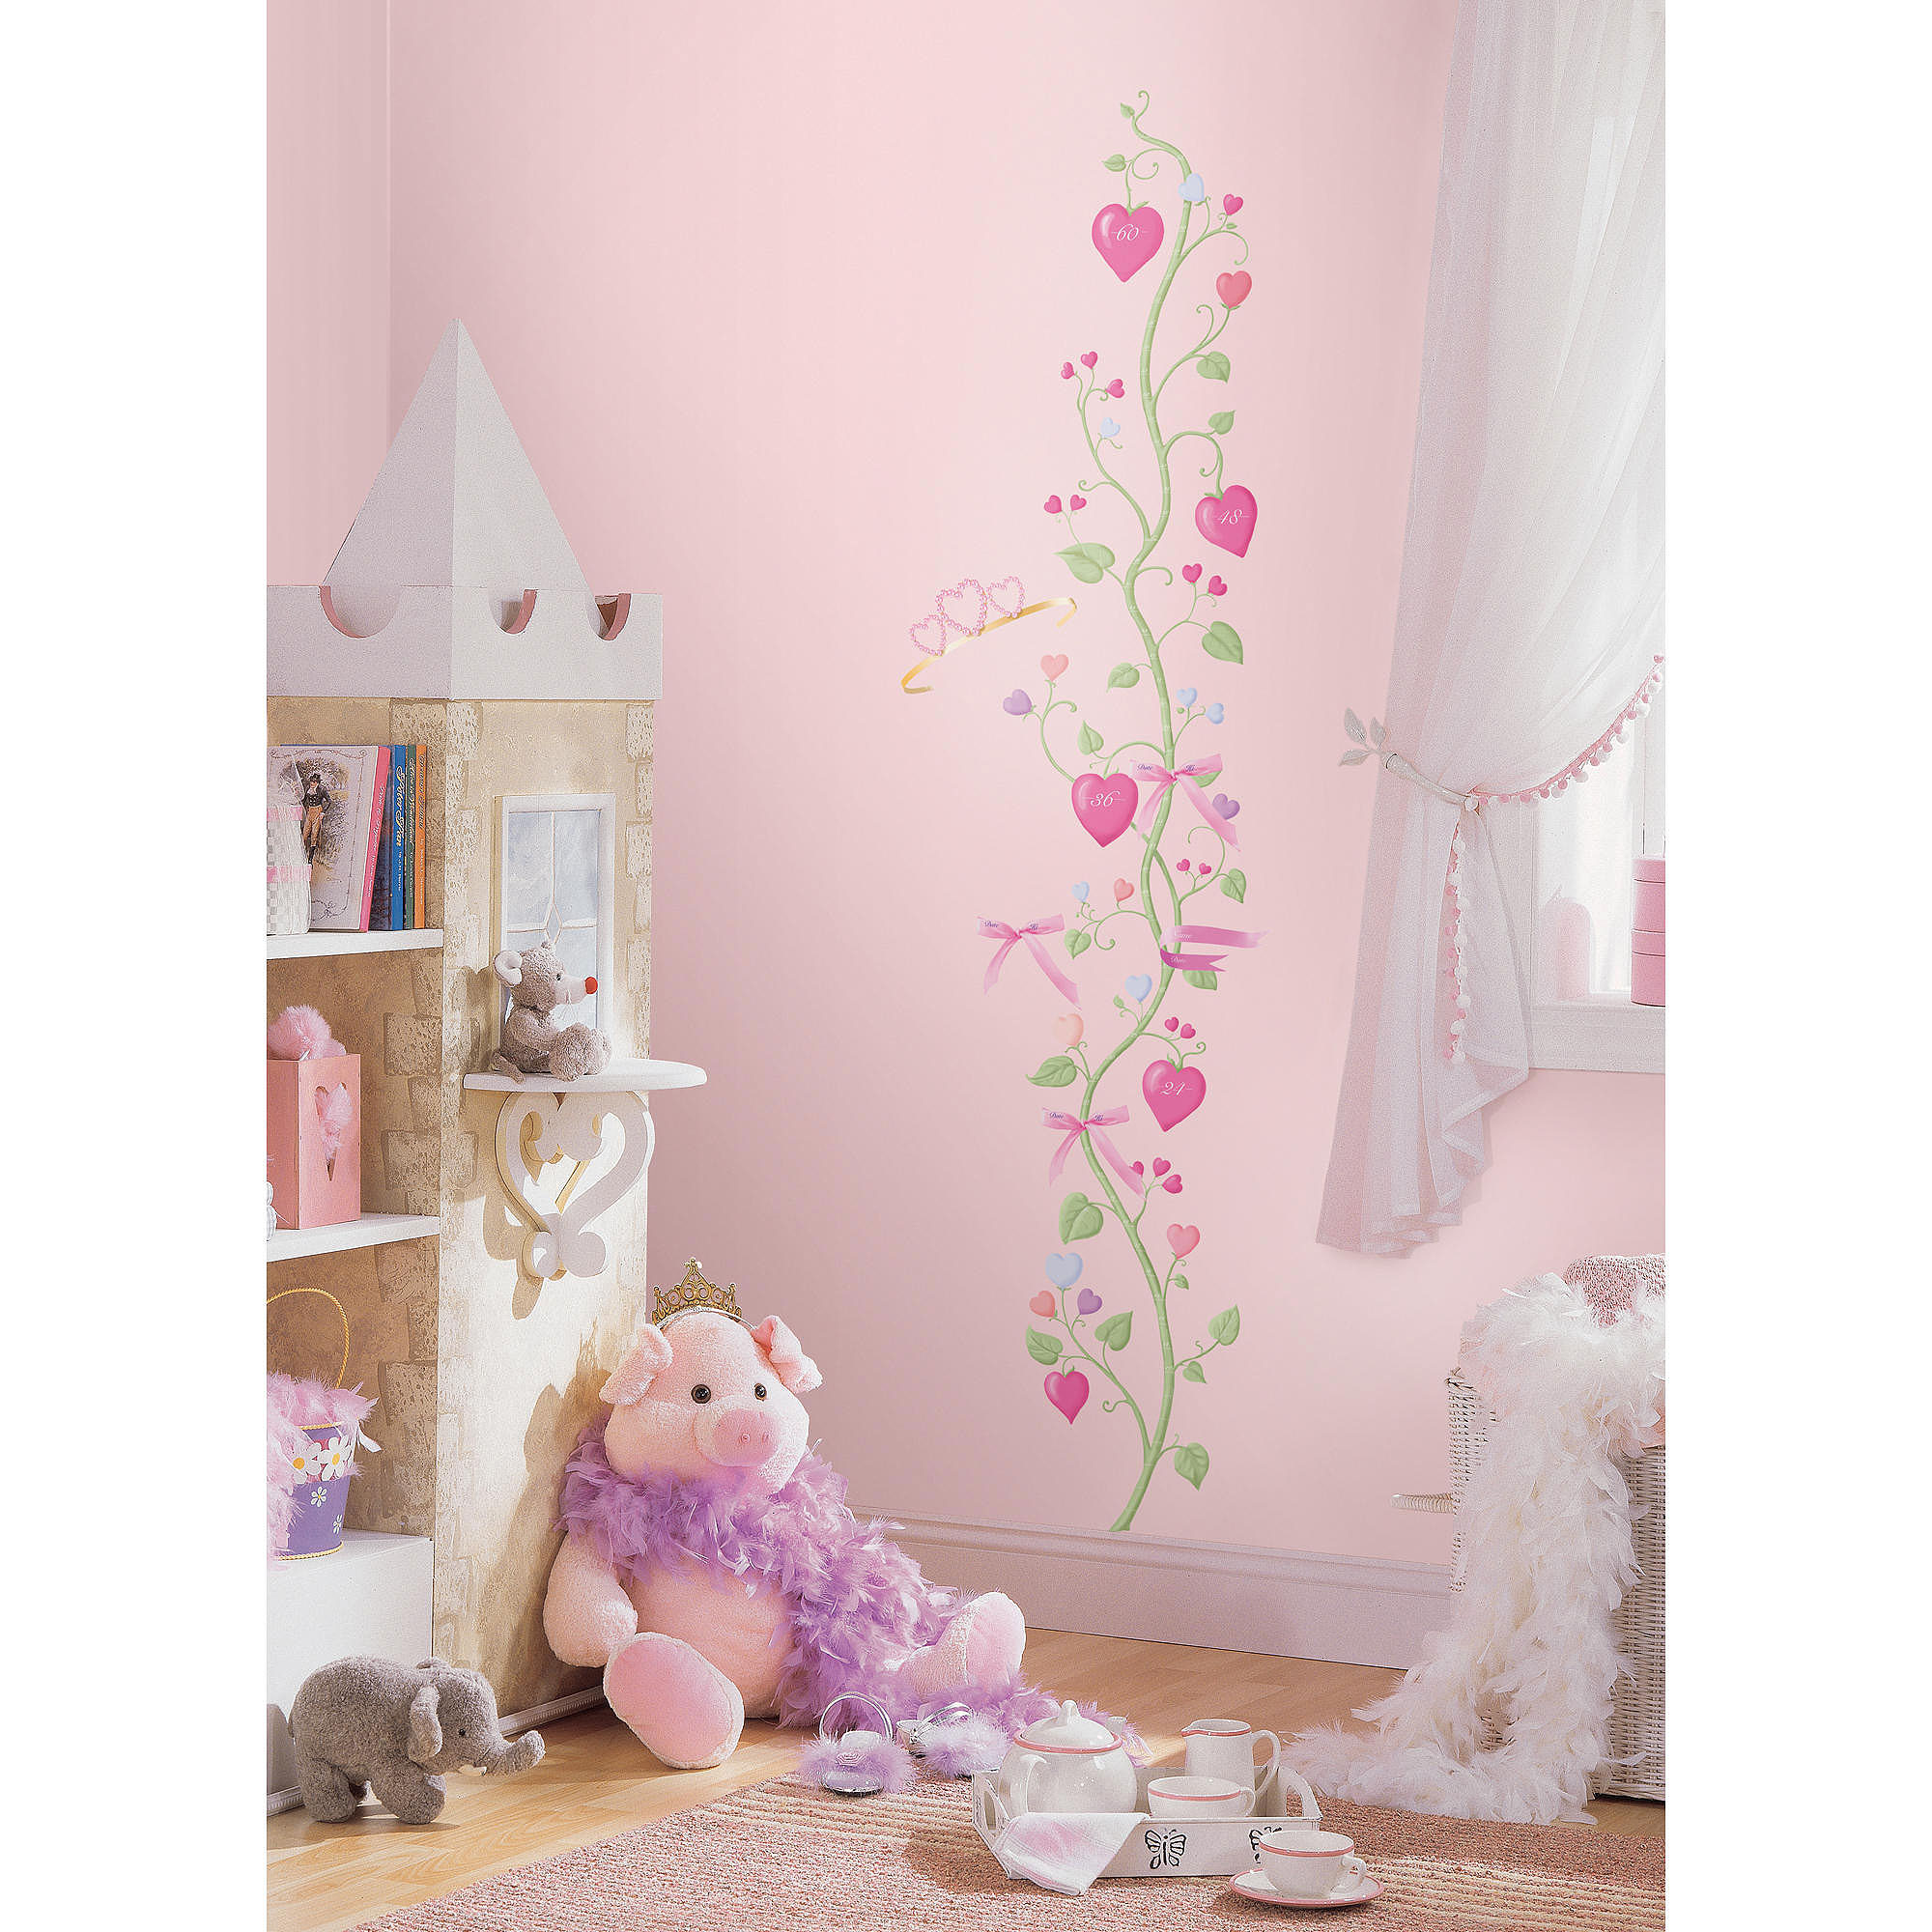 Wallies Princess Land Interactive Peel /& Stick Mural